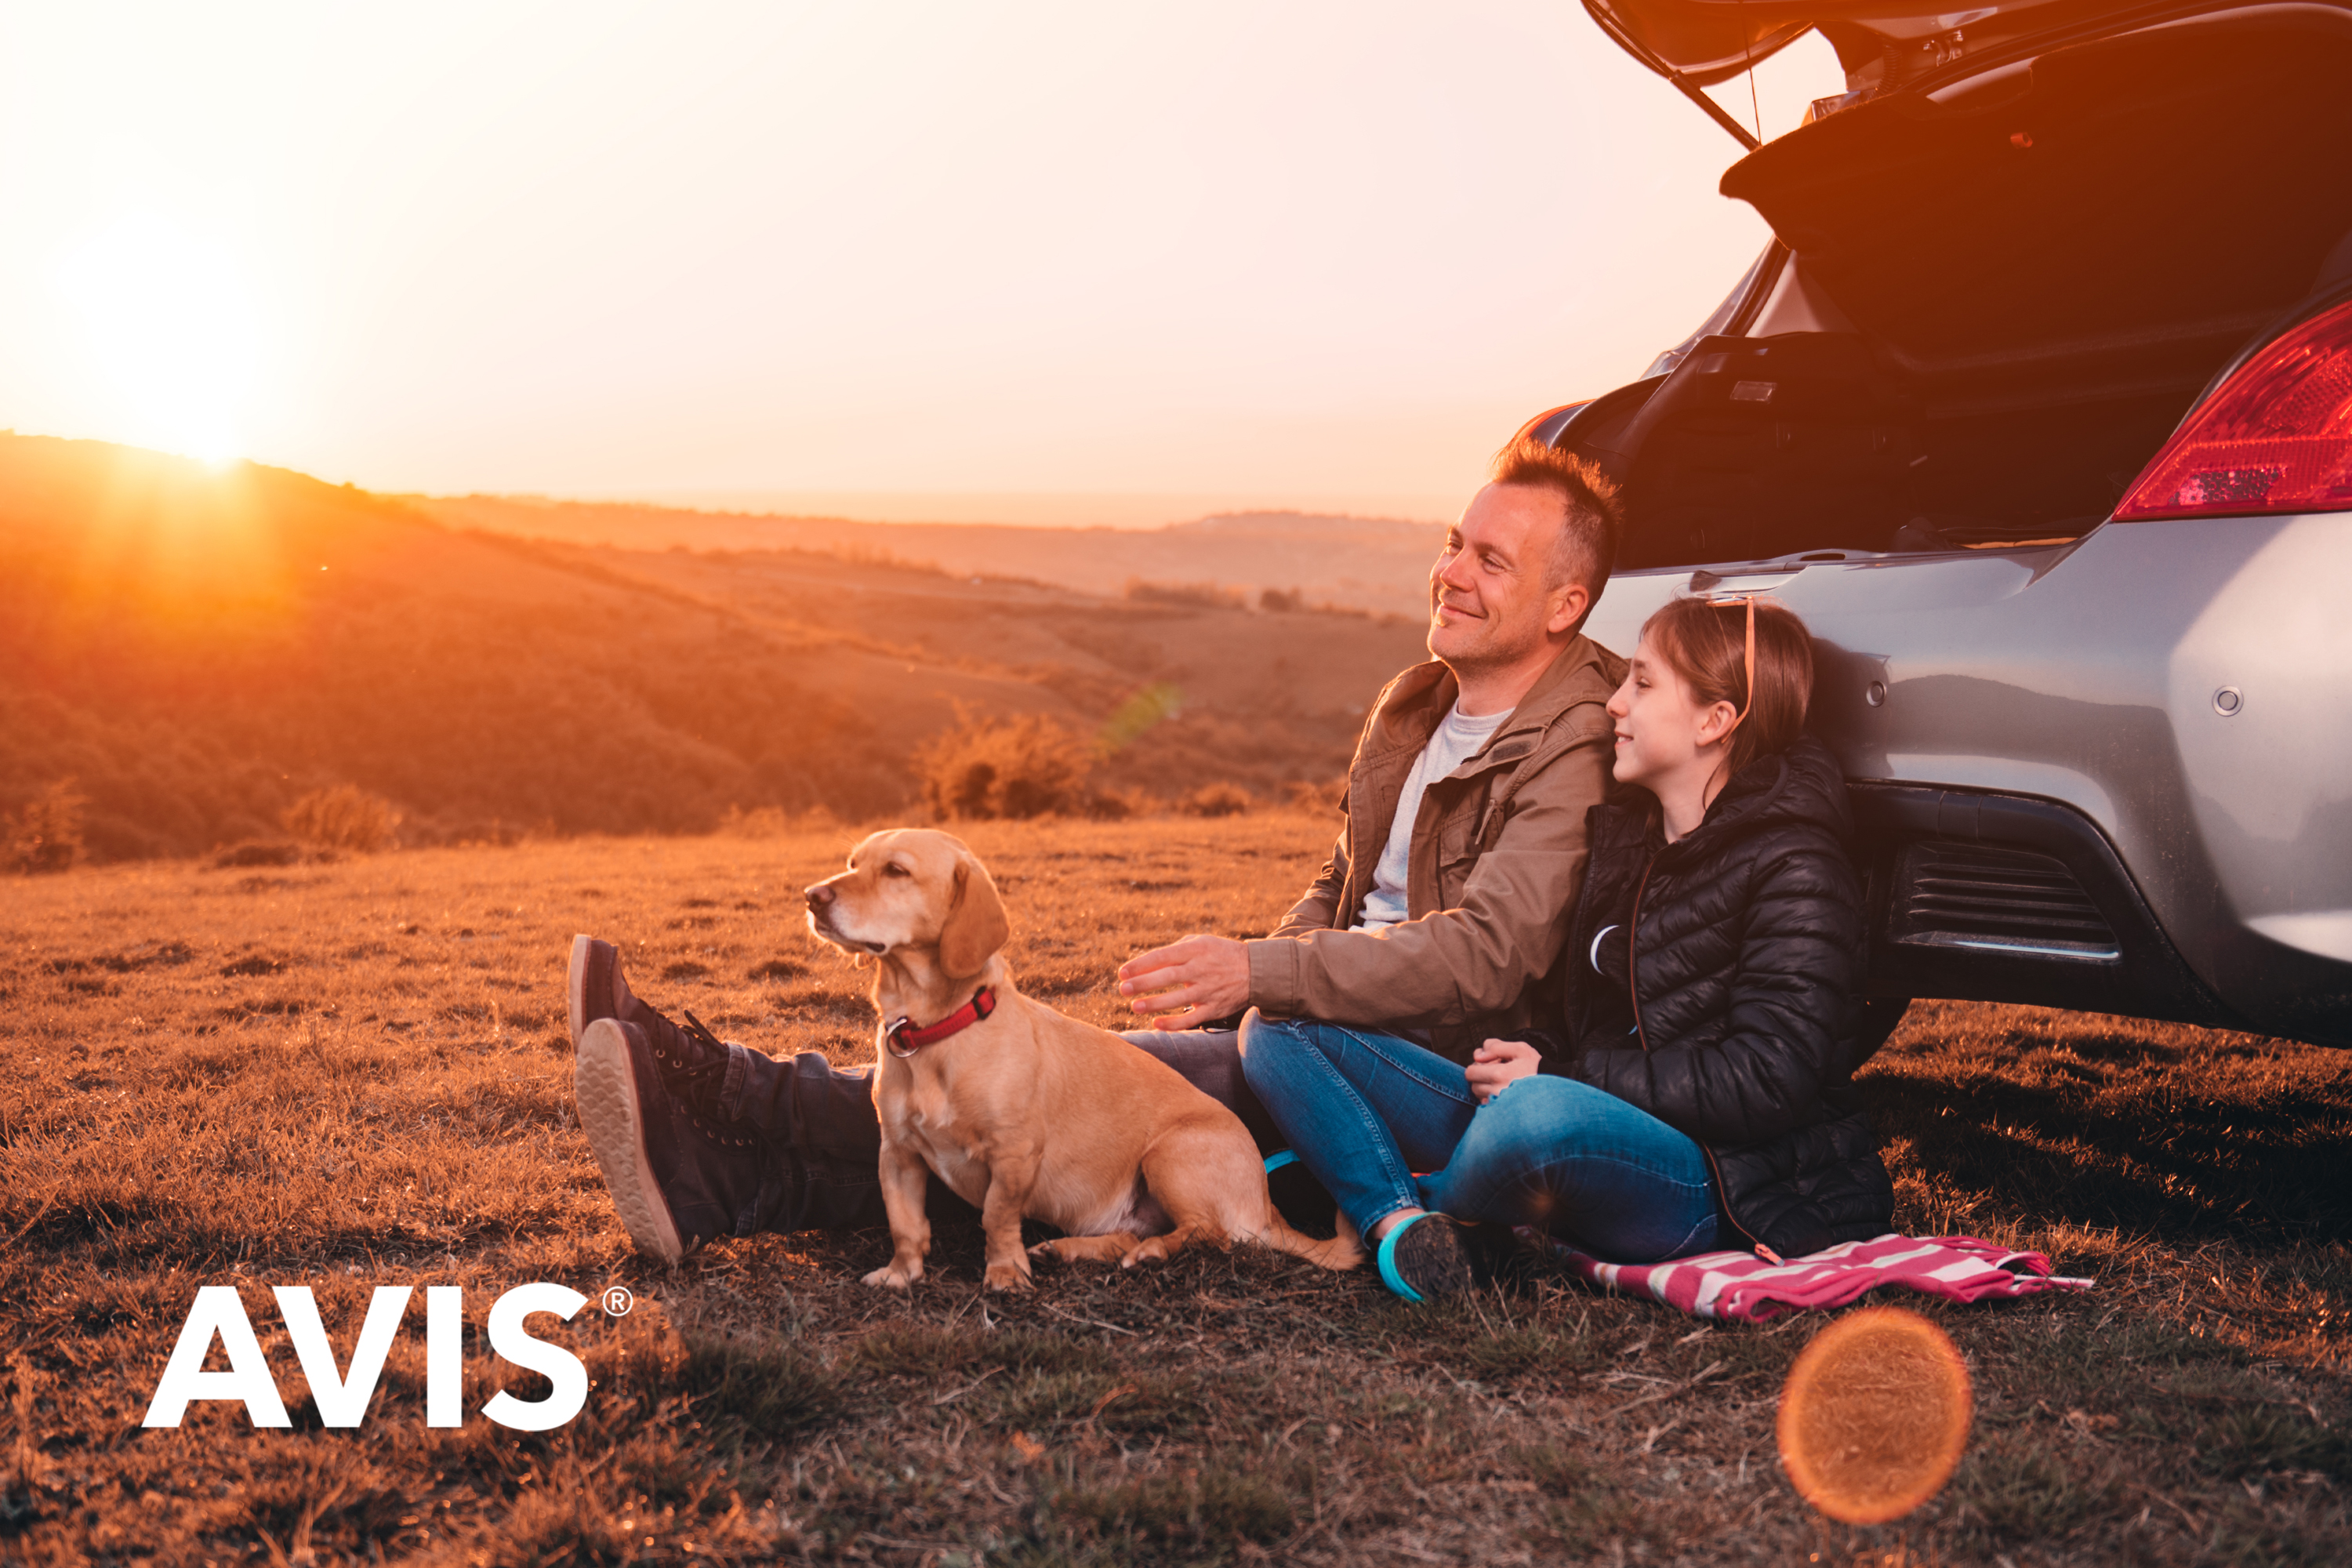 People sitting by car with dog. AVIS logo in bottom left-hand corner.